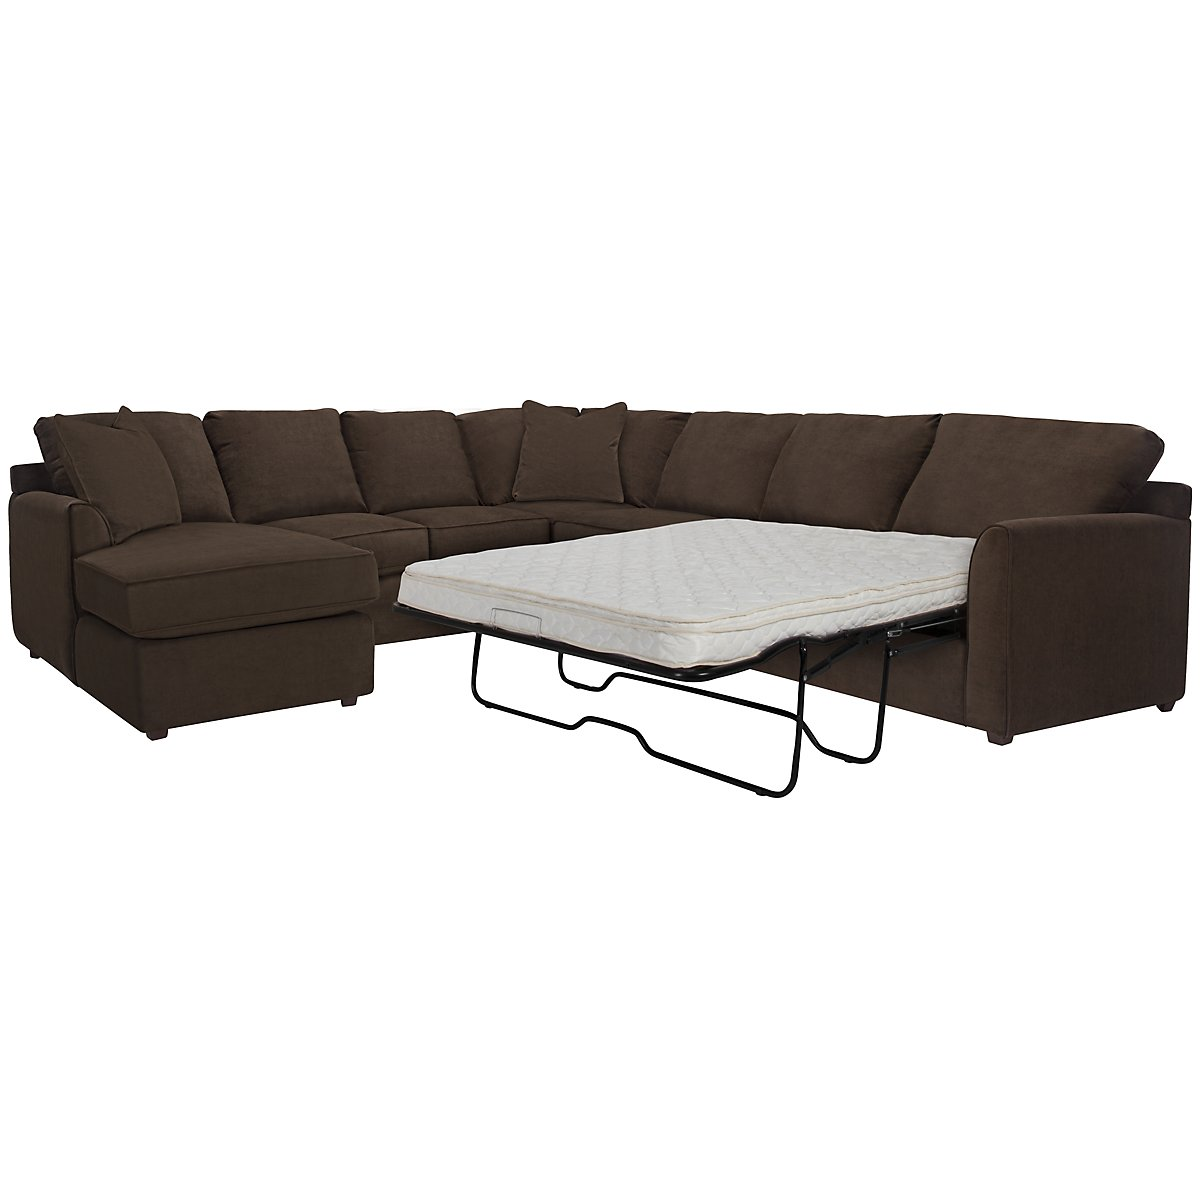 Express3 Dk Brown Microfiber Left Chaise Innerspring Sleeper Sectional